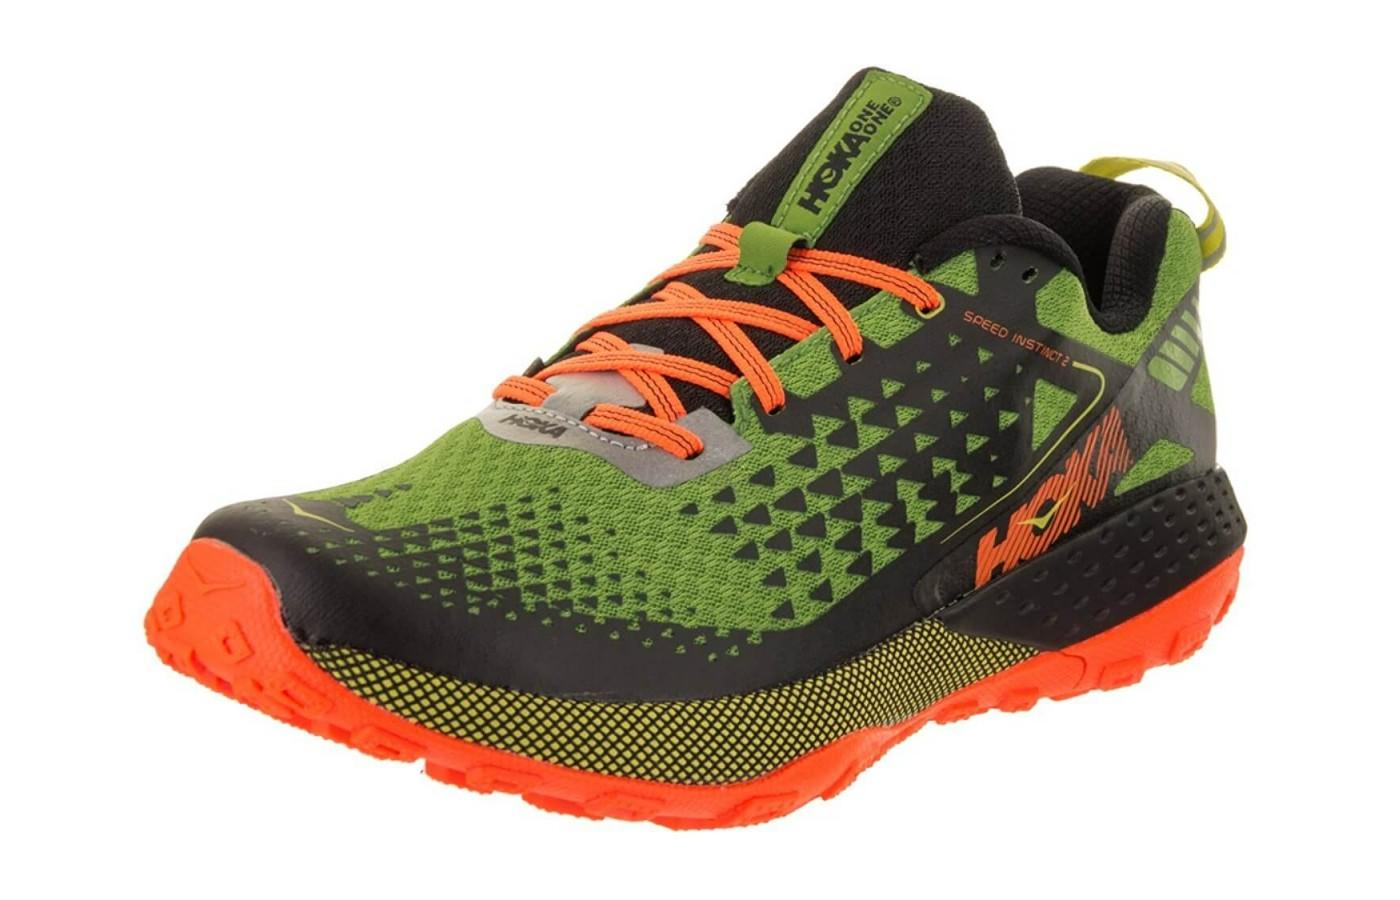 the Hoka One One Speed Instinct 2 is a high-performance trail running shoe